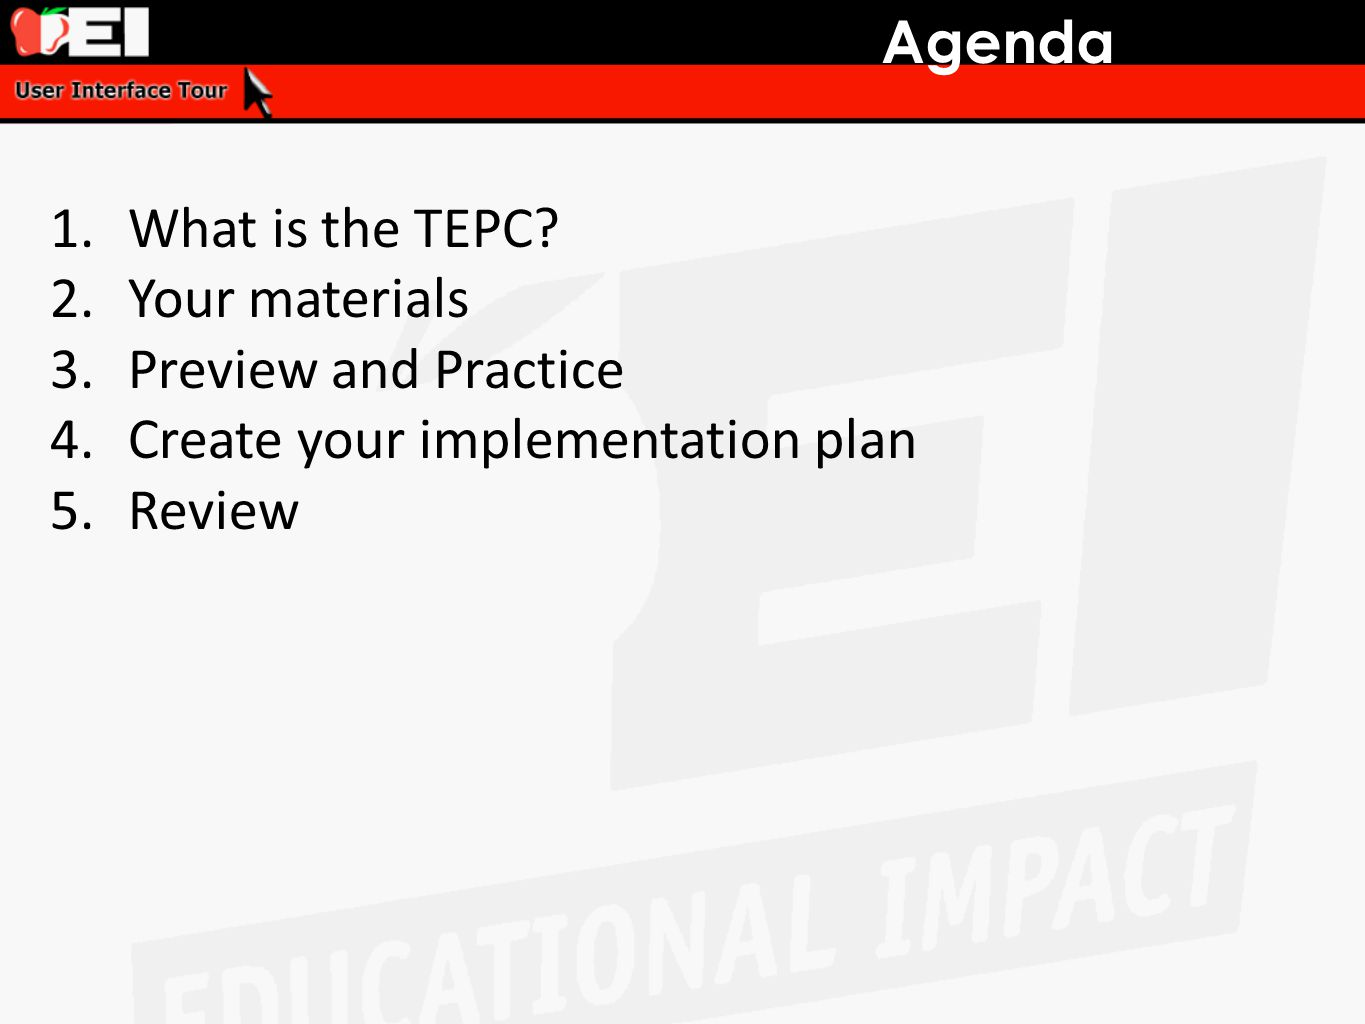 Agenda 1.What is the TEPC? 2.Your materials 3.Preview and Practice 4.Create your implementation plan 5.Review